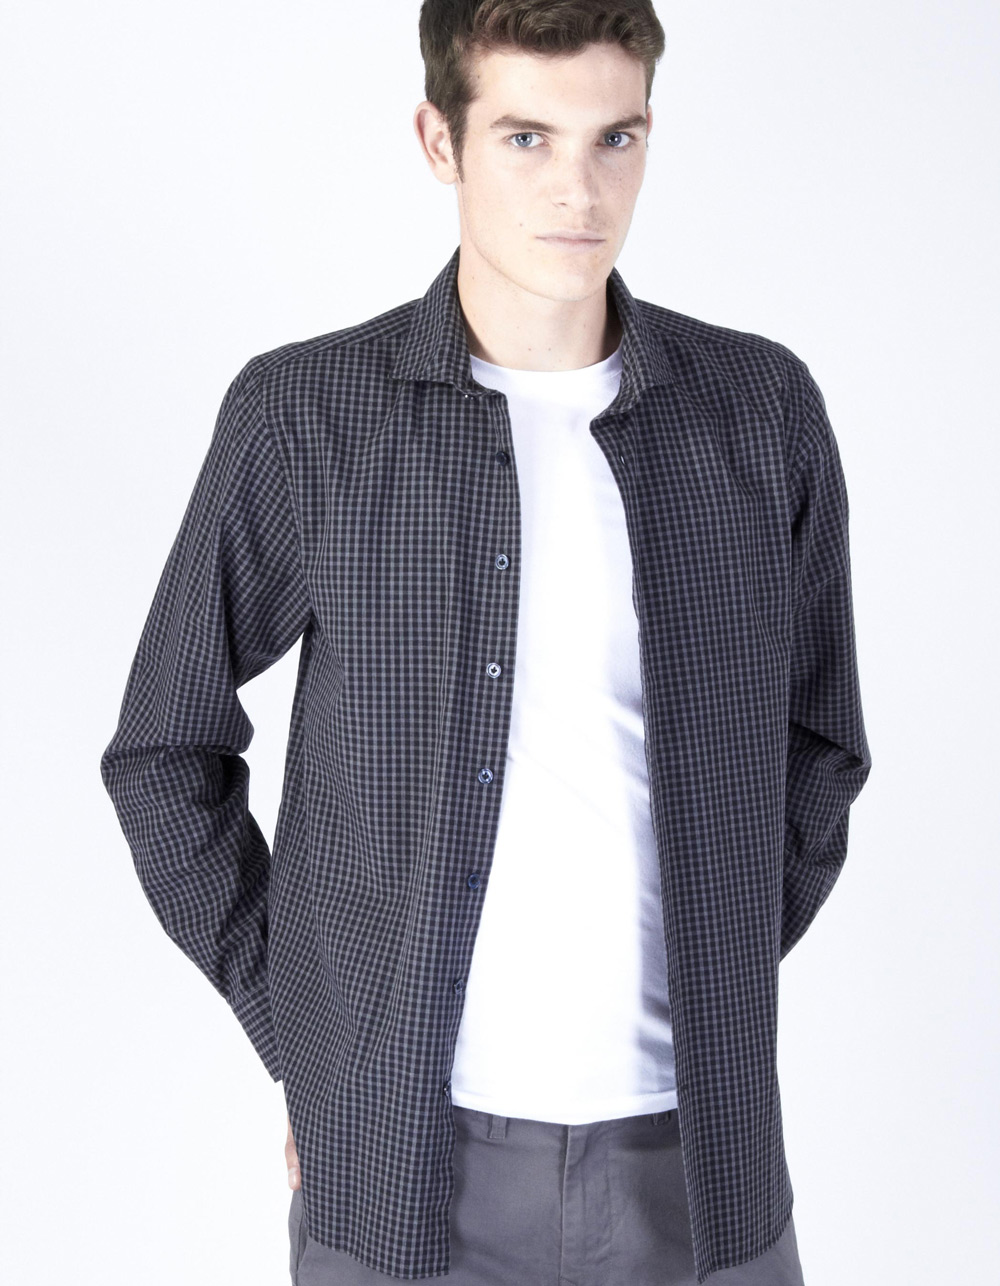 Charcoal grey plaid shirt